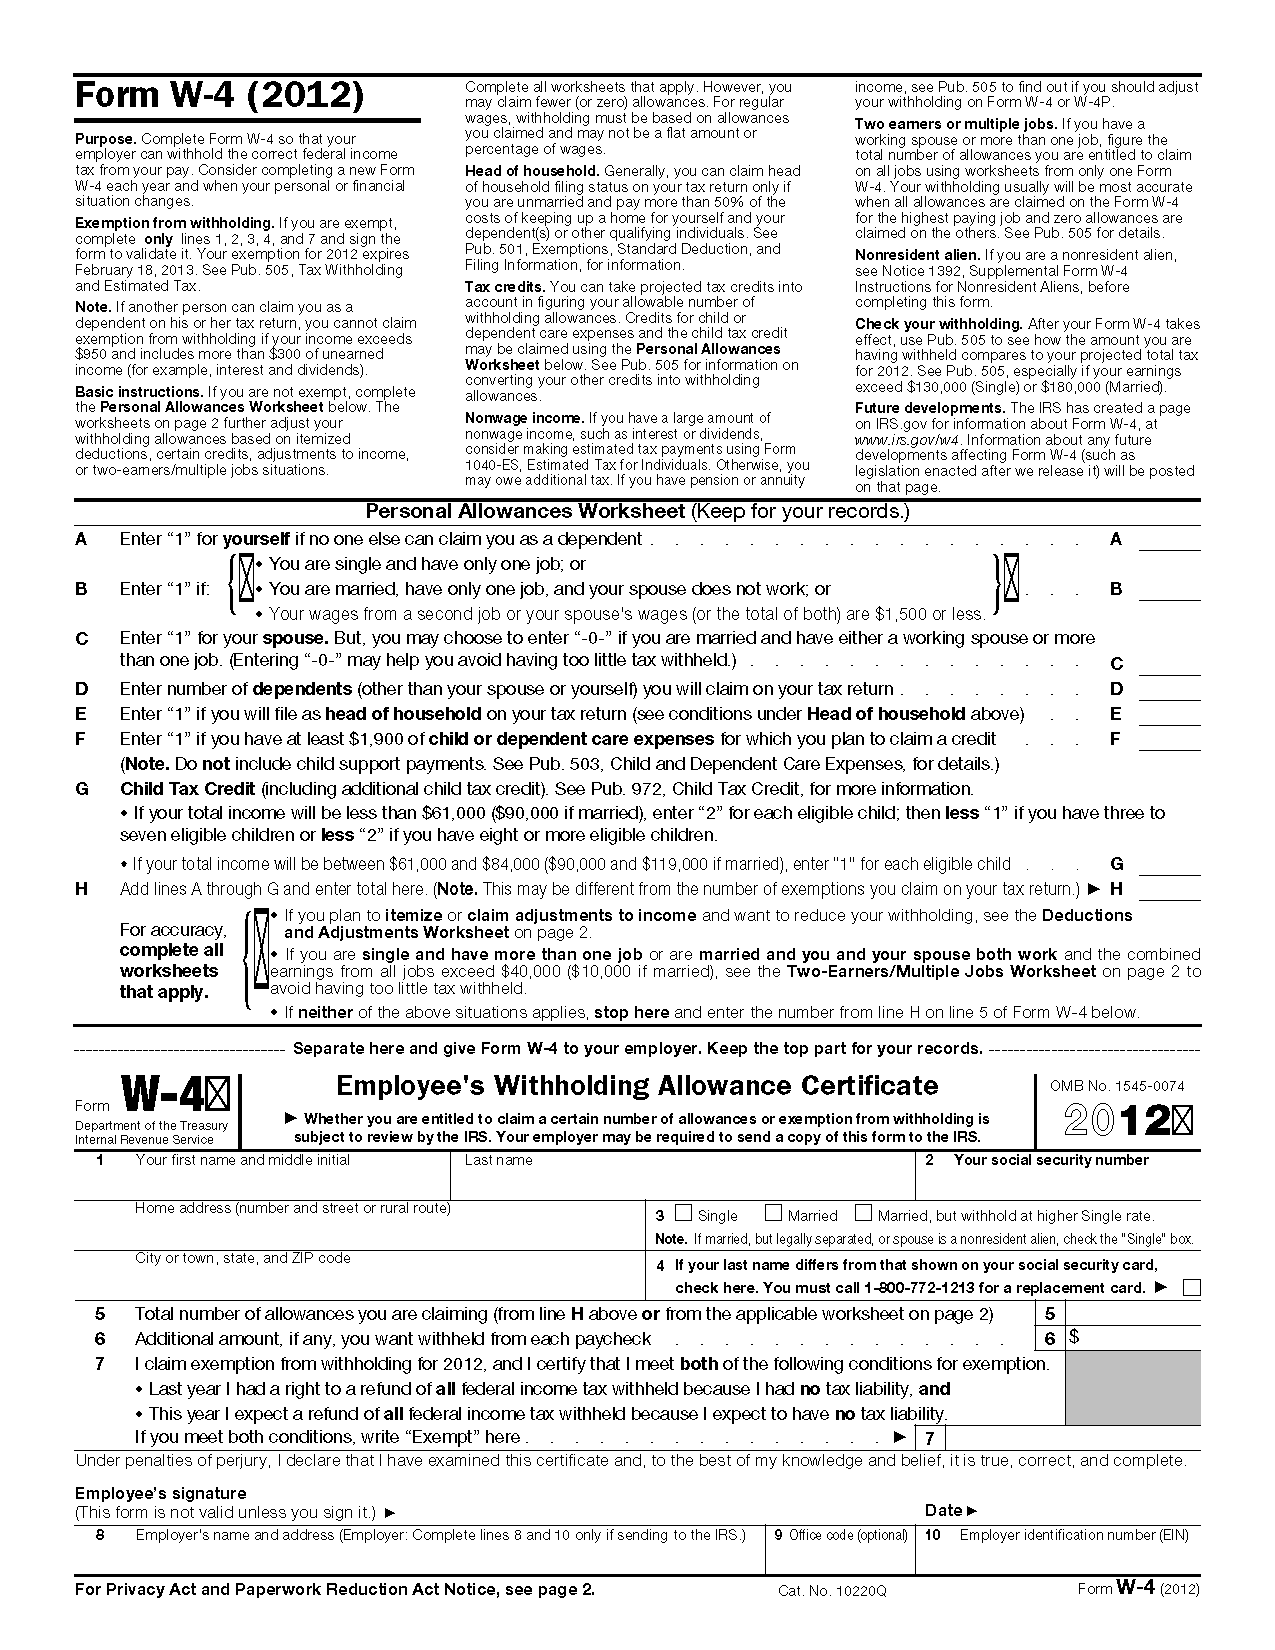 worksheet W4 Allowance Worksheet form w 4 employees withholding allowance certificate view all 2011 irs tax forms